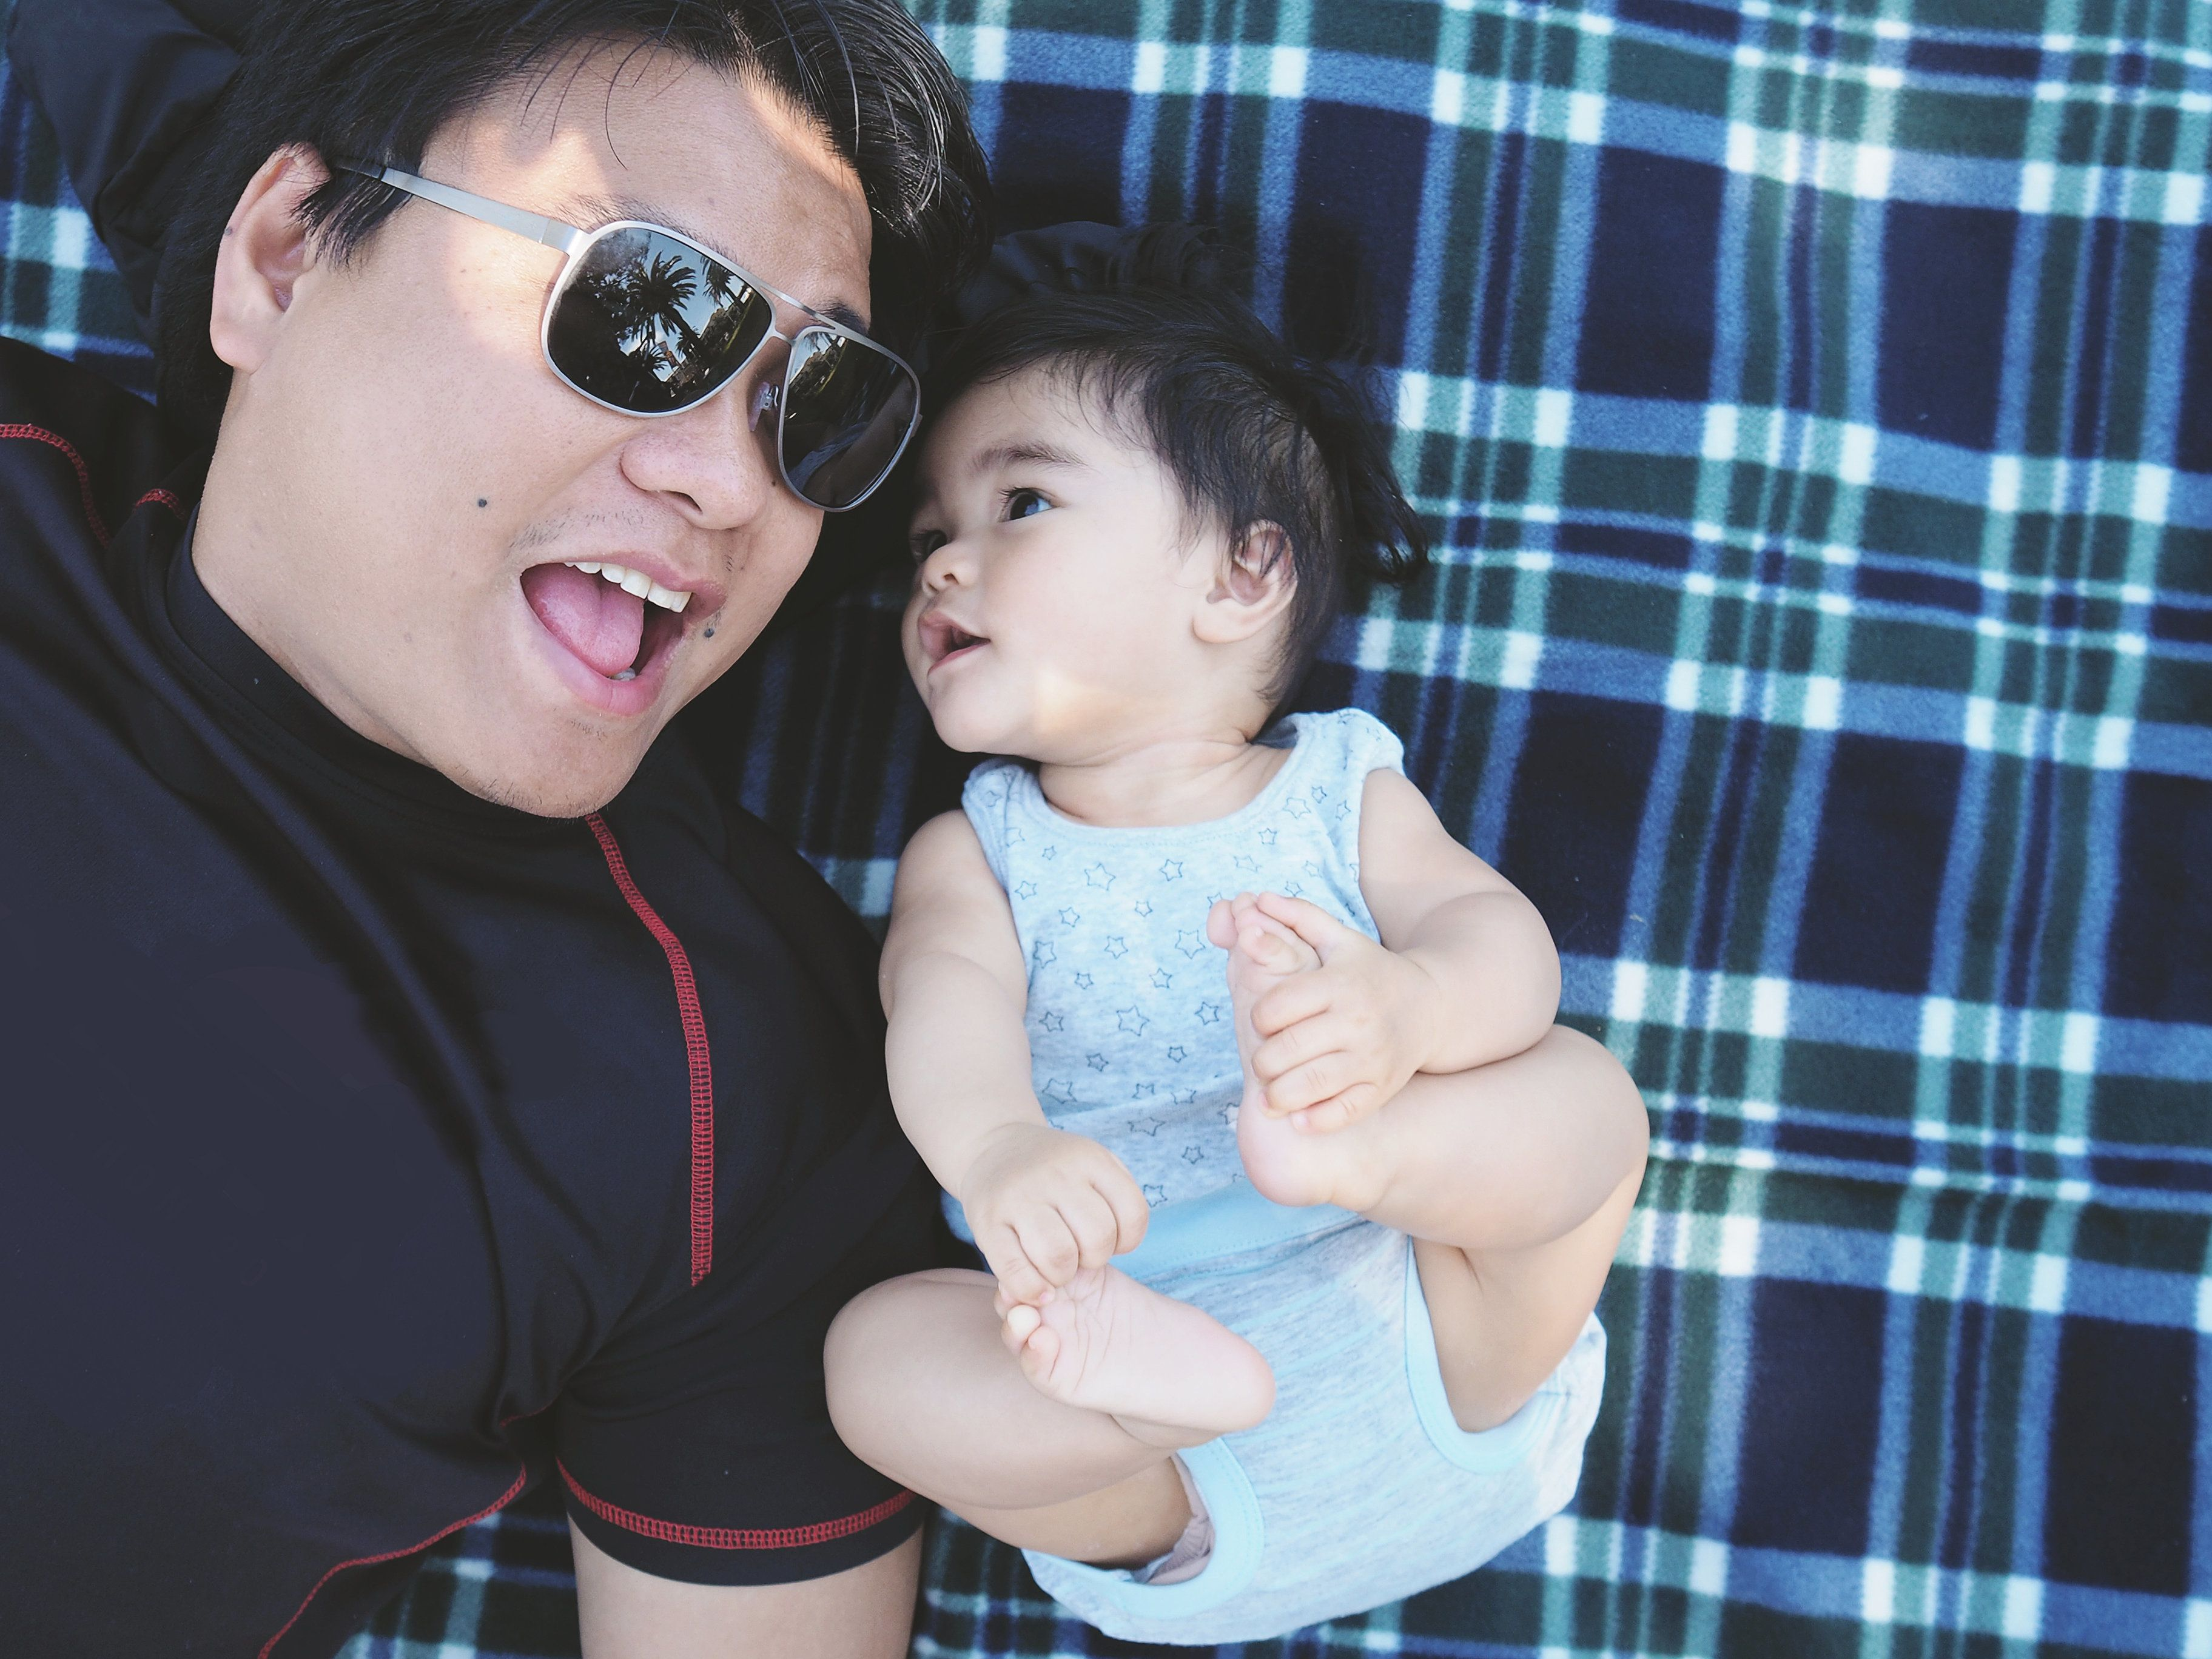 Asian Filipino Dad and baby boy (son) both lie on their backs on a picnic blanket. Dad is wearing shades and seems to be talking to his baby. Baby is looking directly at his dad while holding or touching both his feet.